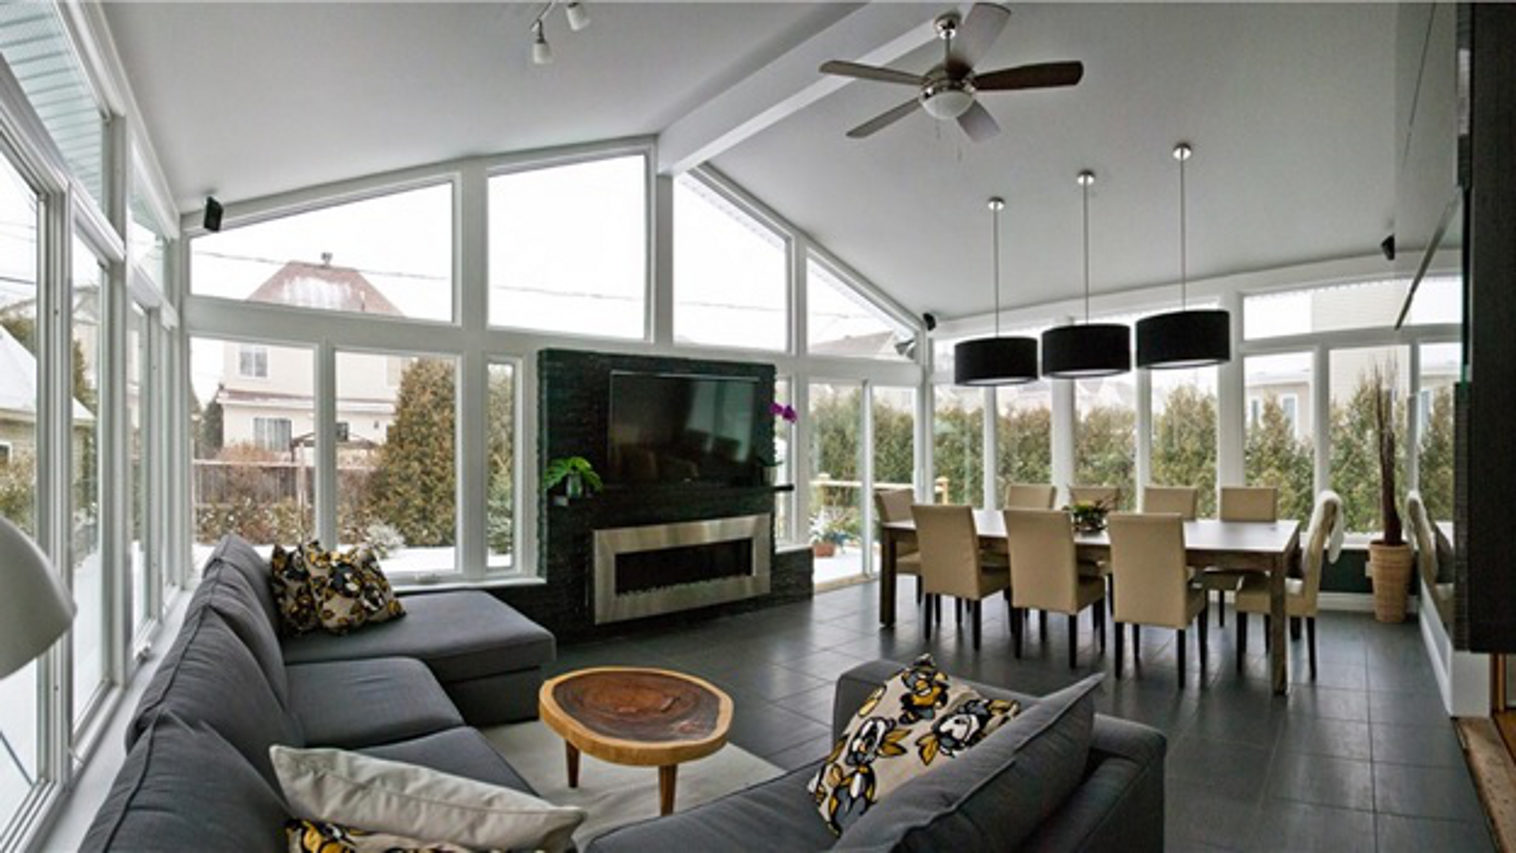 Cathedral design sunroom